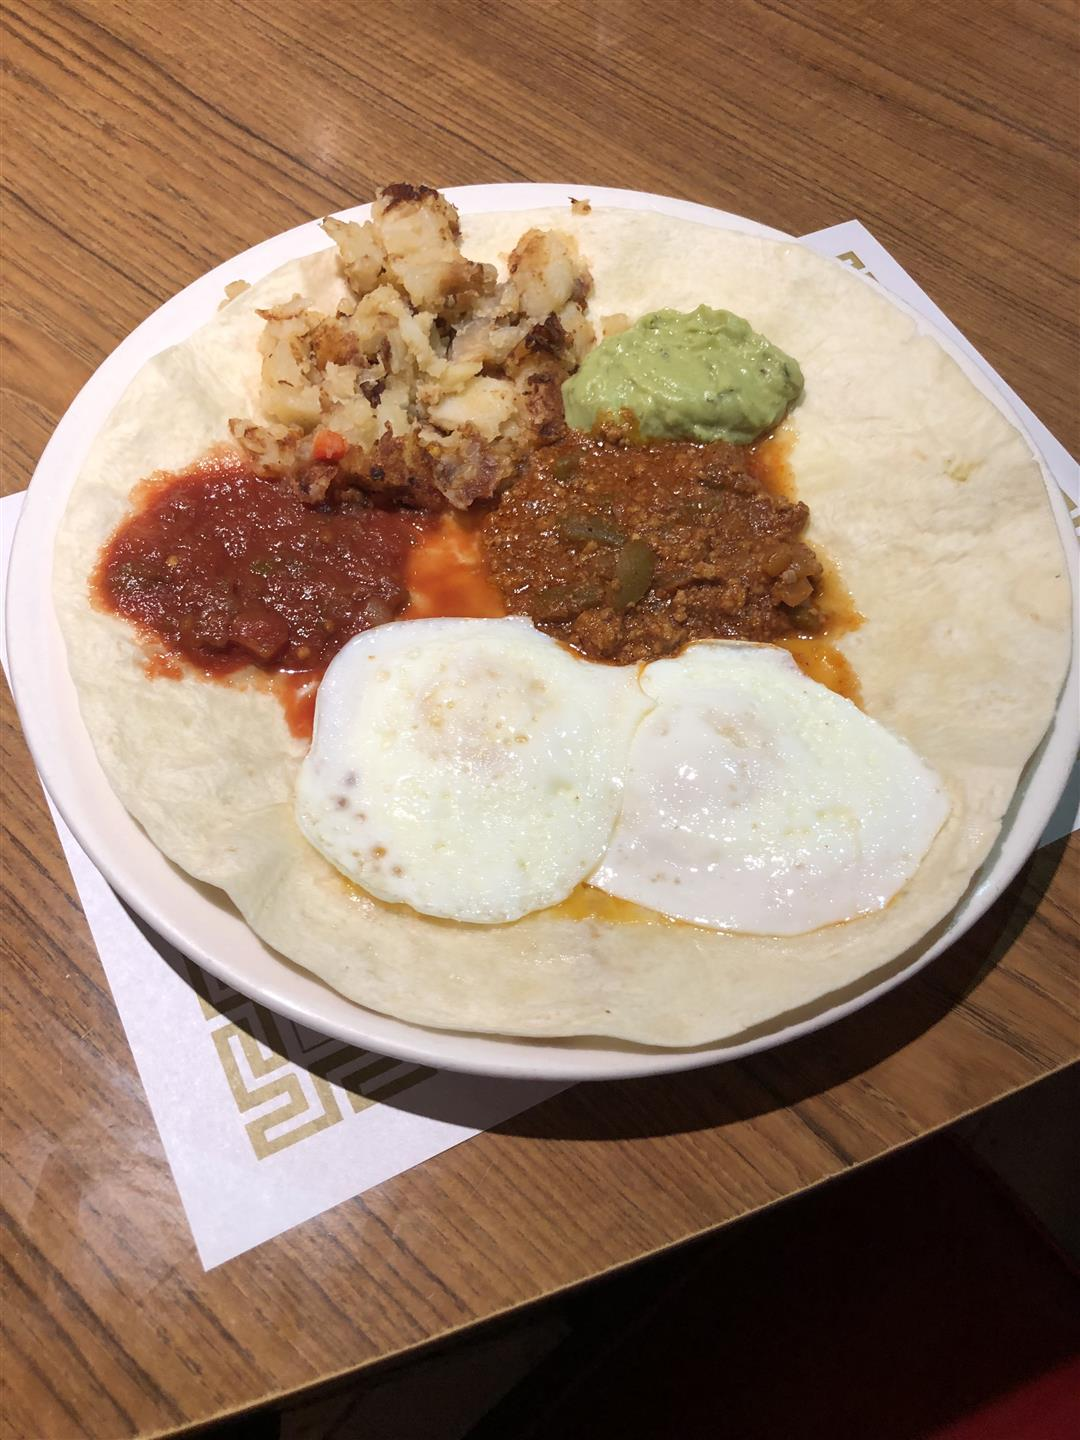 Two fried eggs, cheddar cheese, salsa & guacamole on a tortilla.